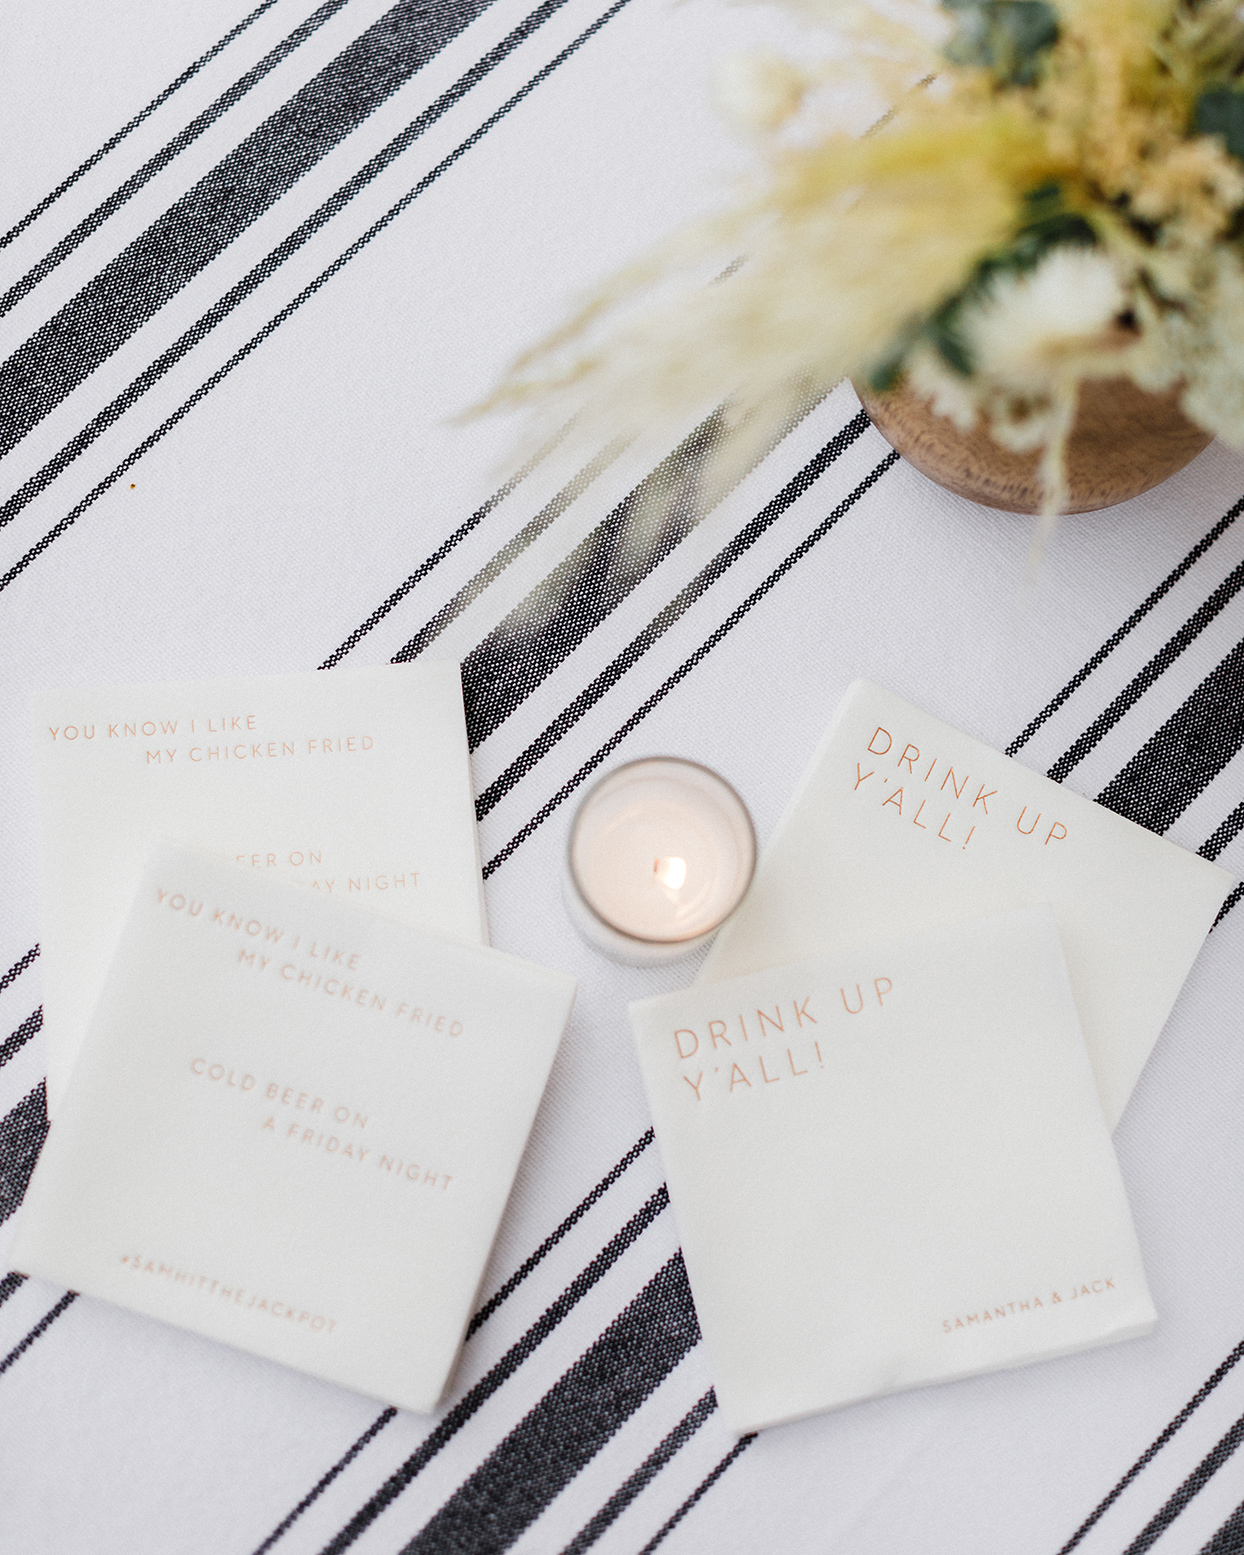 sam jack welcome party customized napkins and candle